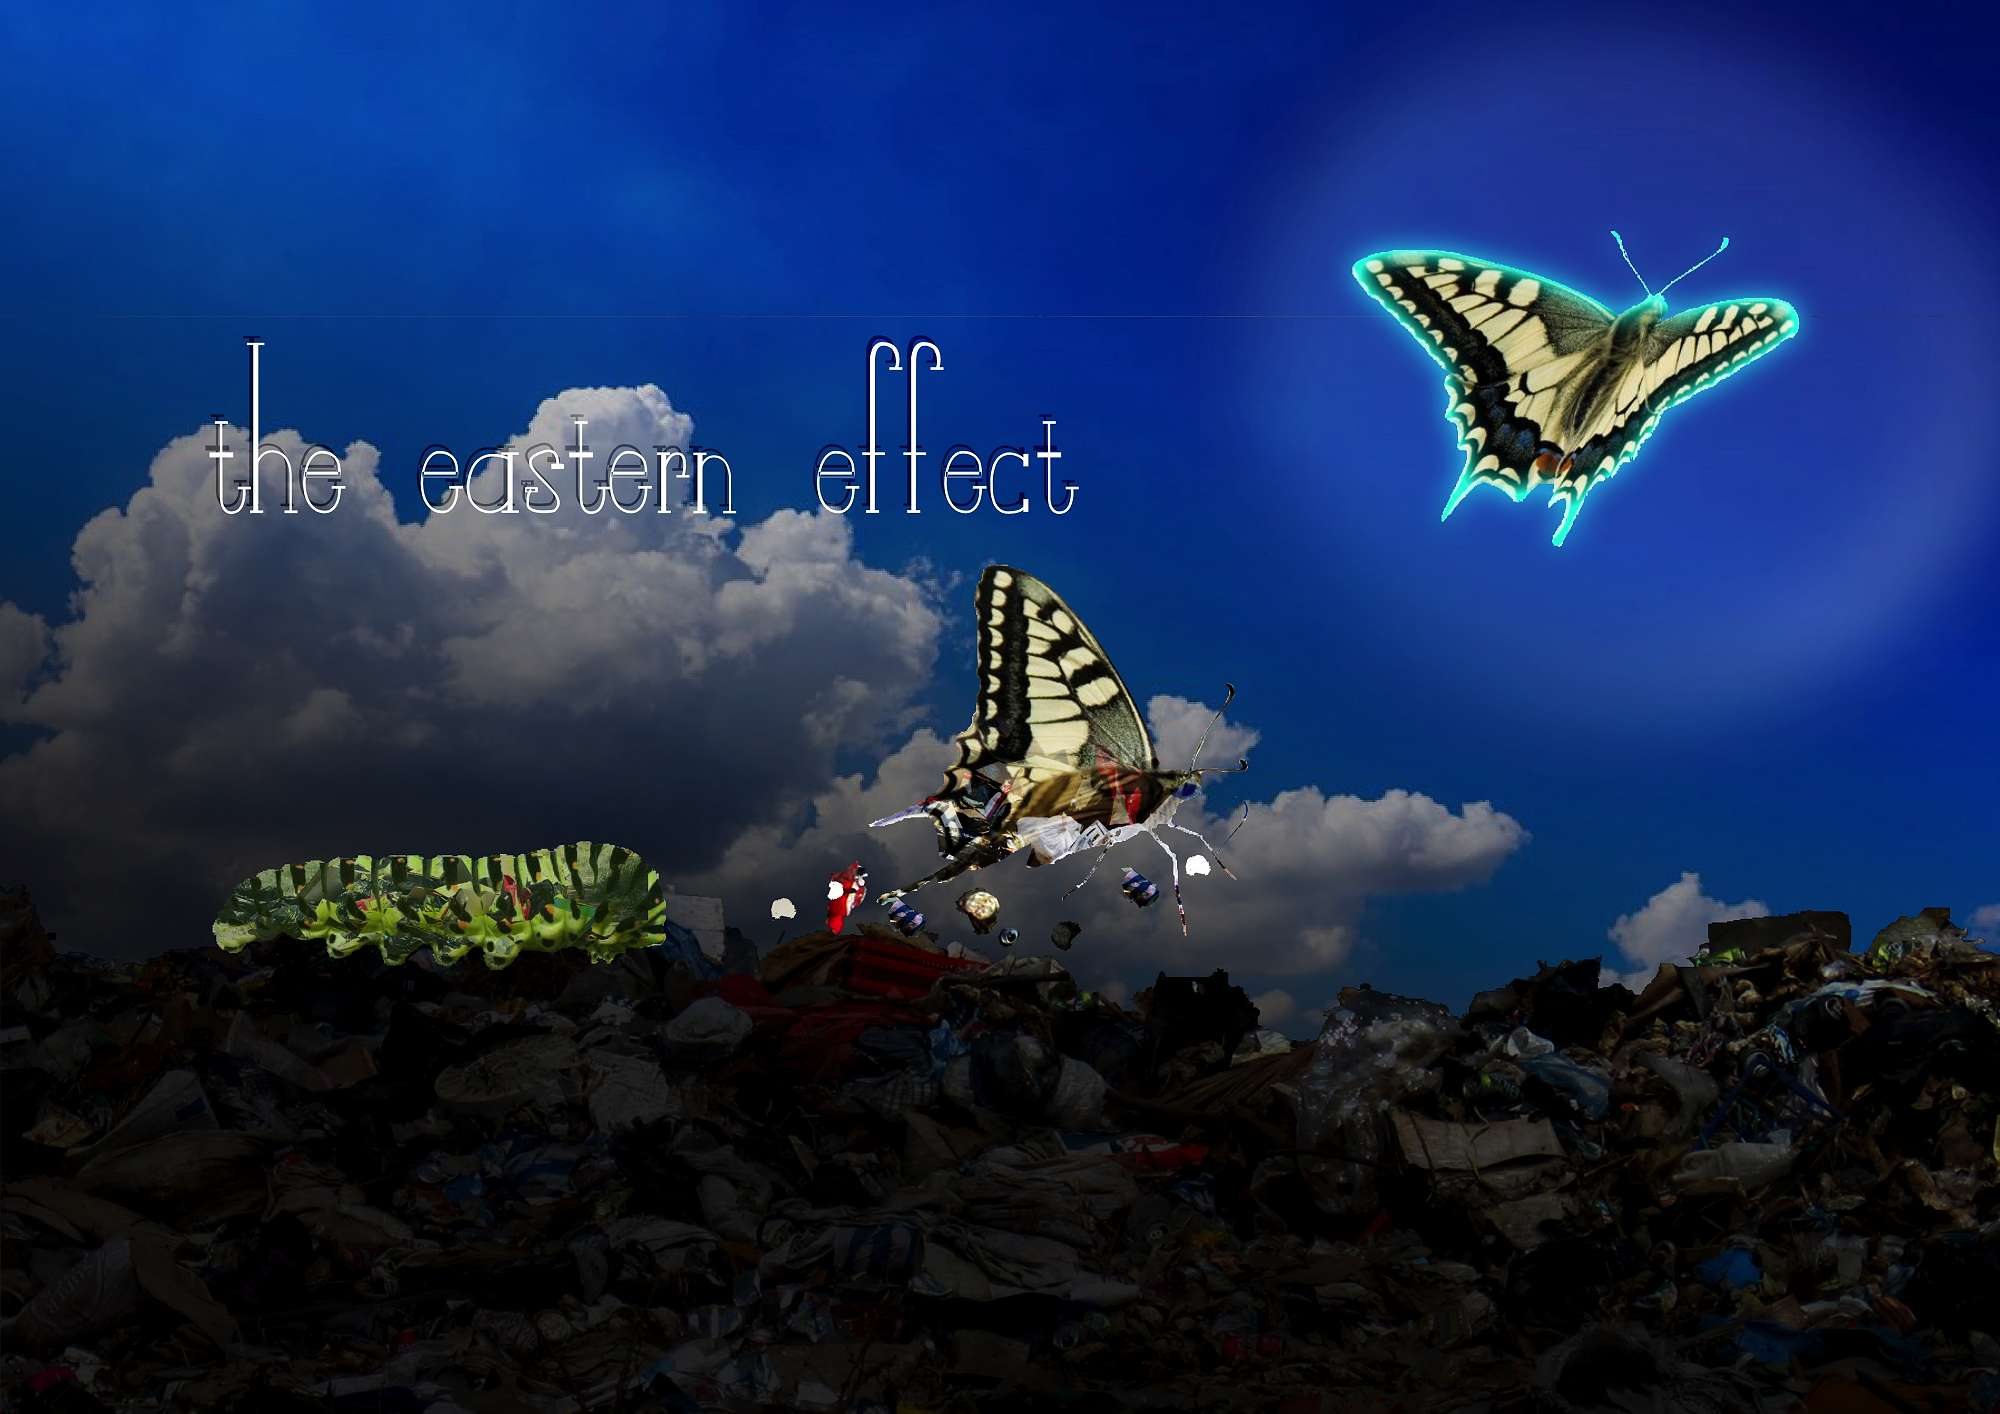 The Eastern Effect Project